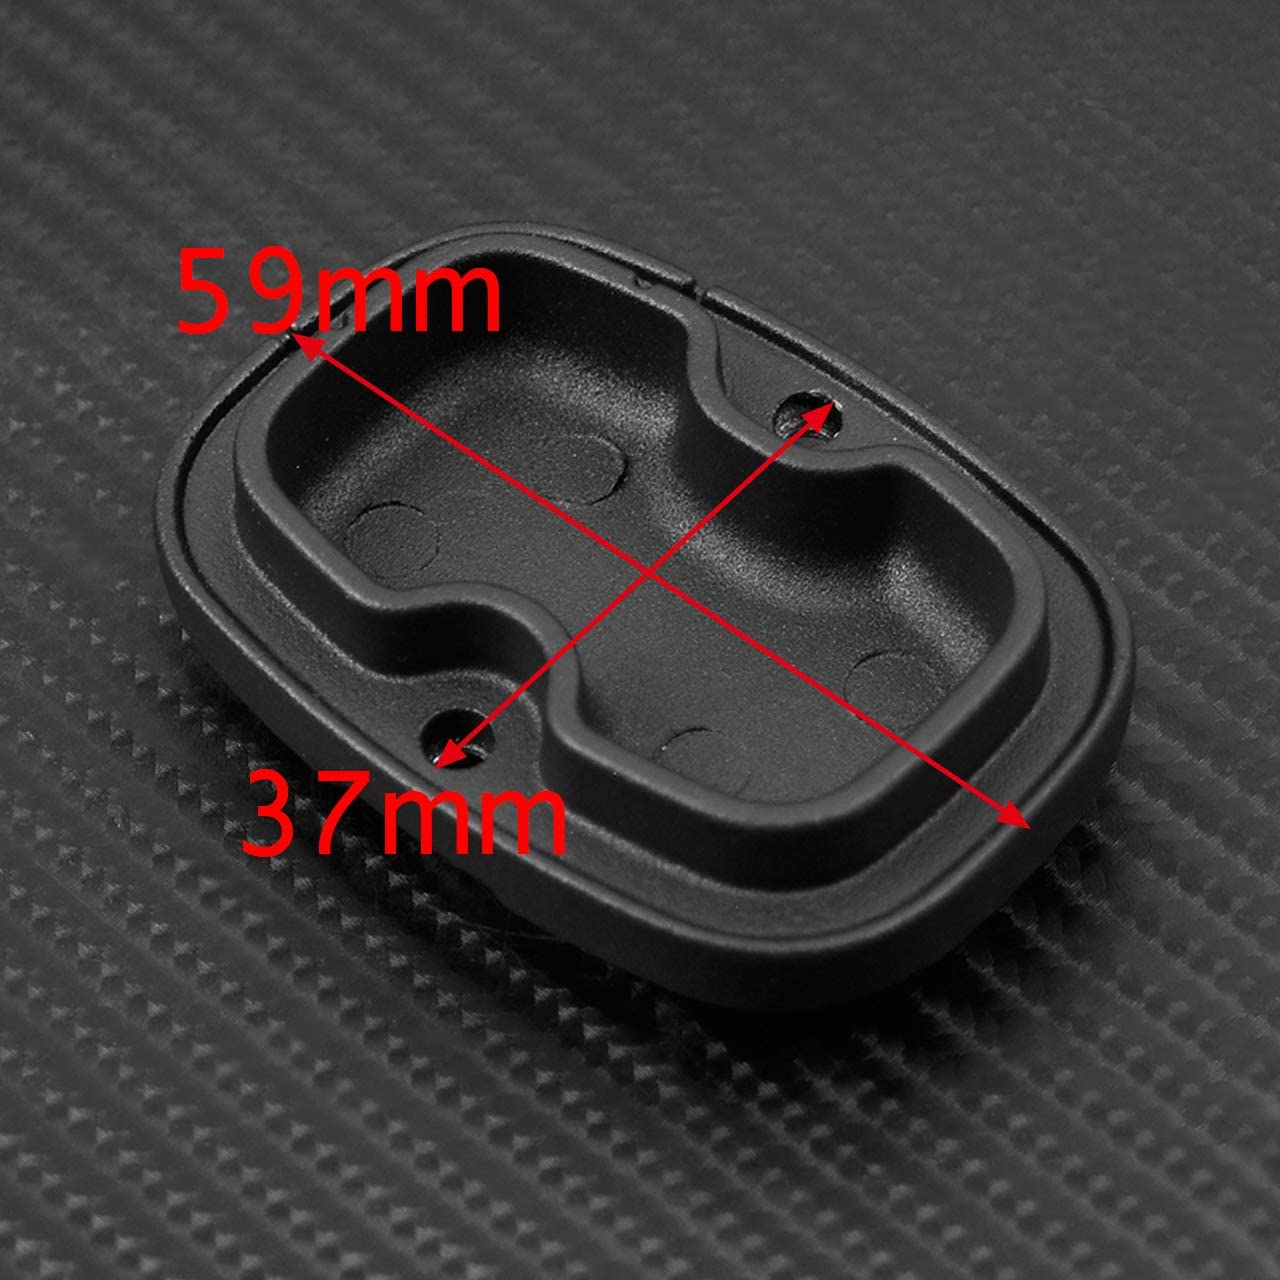 YHMTIVTU Chrome Rear Brake Master Cylinder Cover with Black Gasket Rubber Compatible with Harley Touring Road King FLHR Street Electra Glide 2008-2019